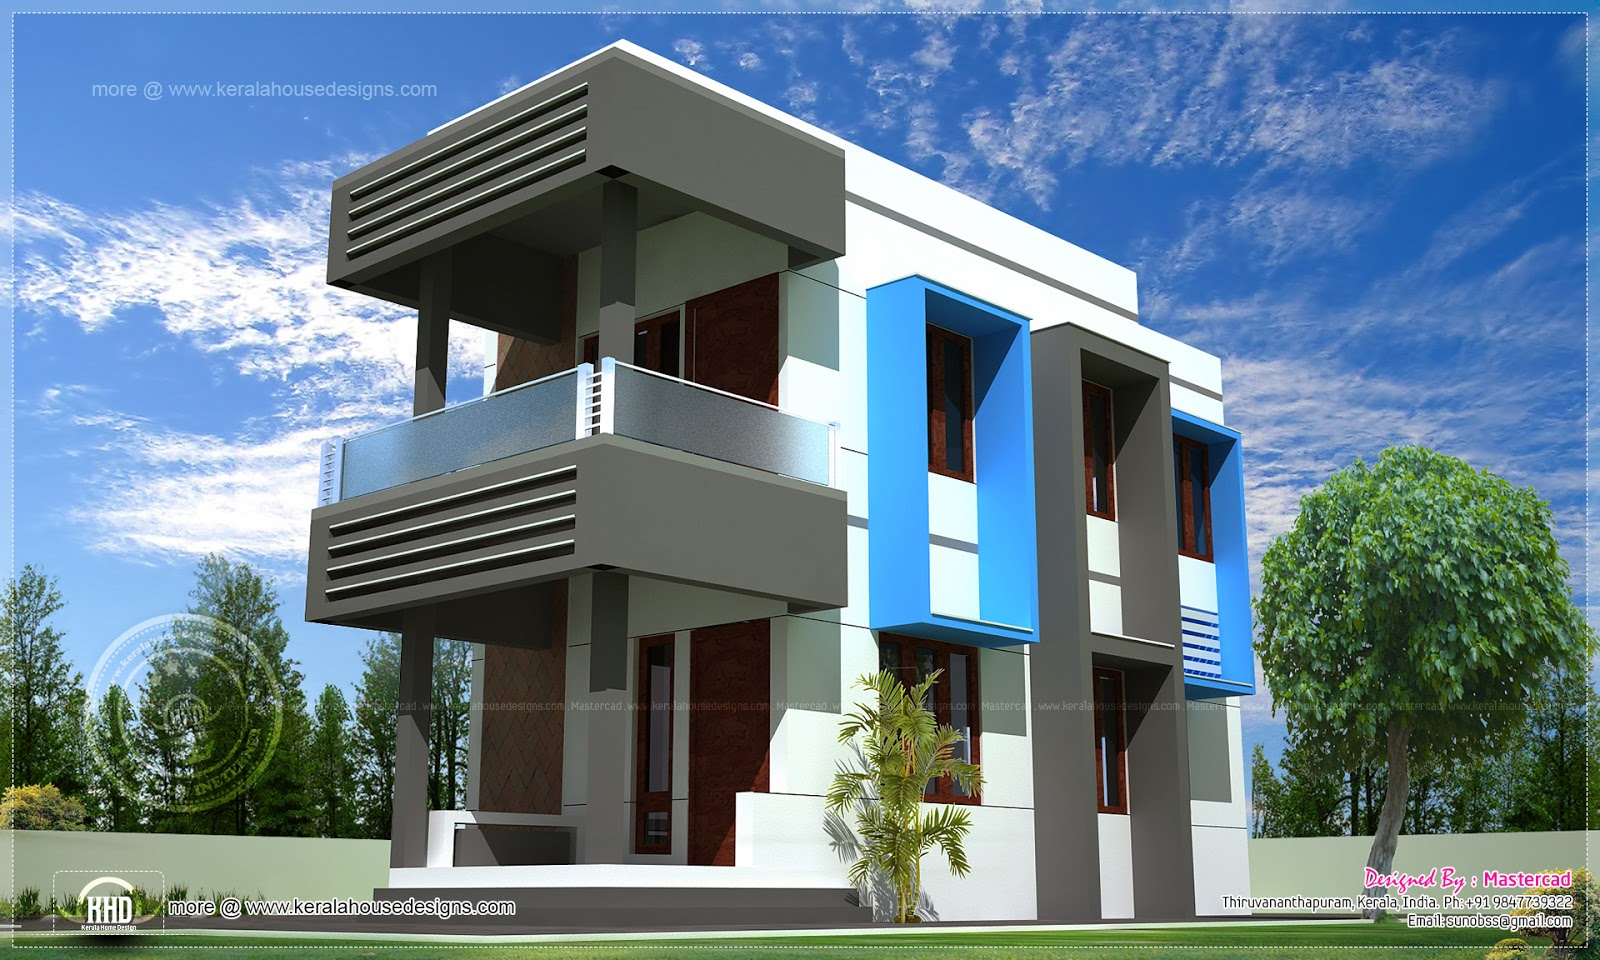 Contemporary compact villa design home kerala plans for 120 sqm modern house design